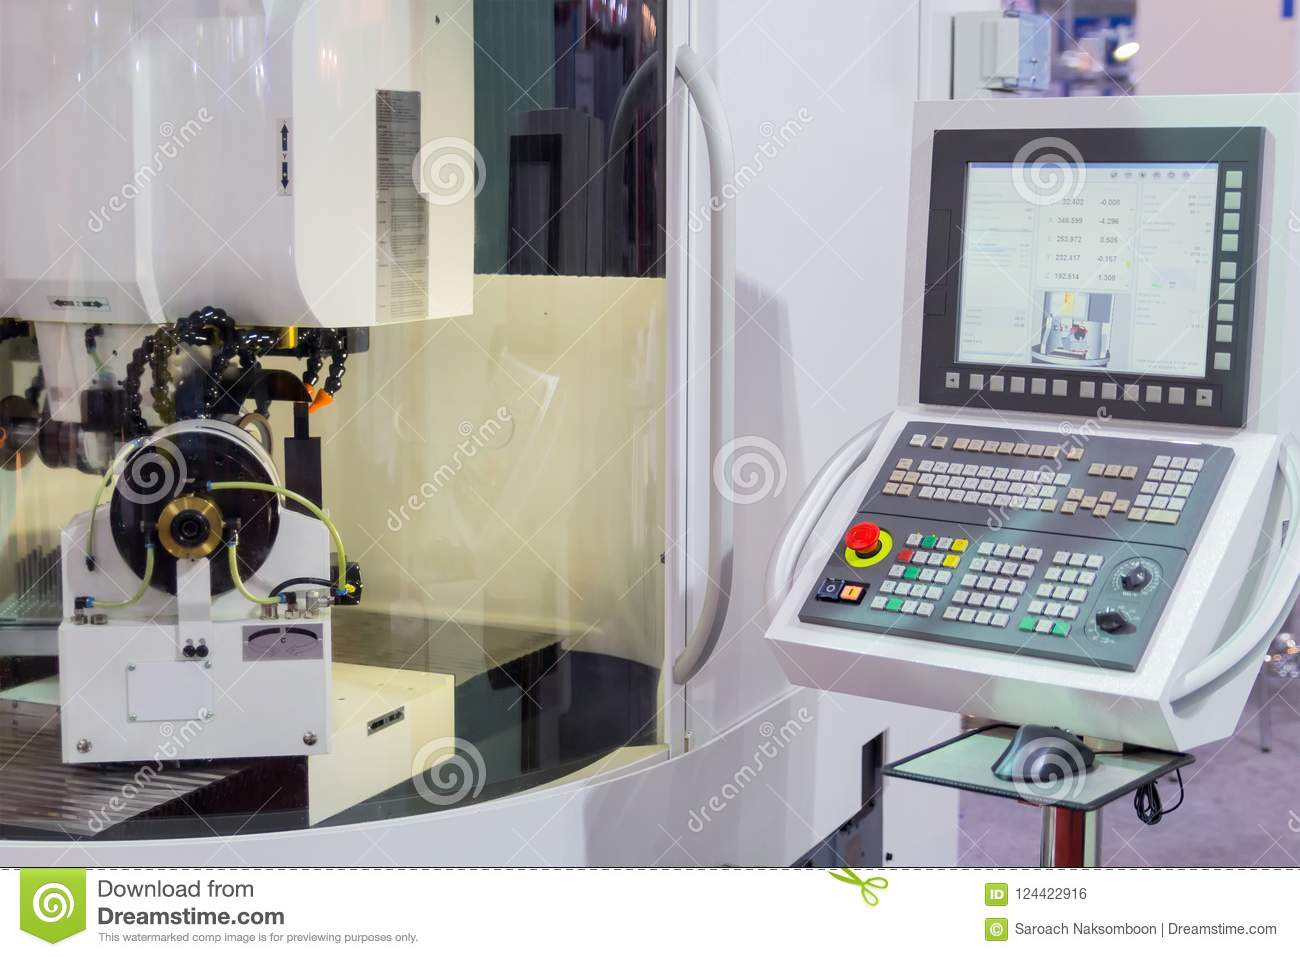 Manufacture industrial medical Instruments